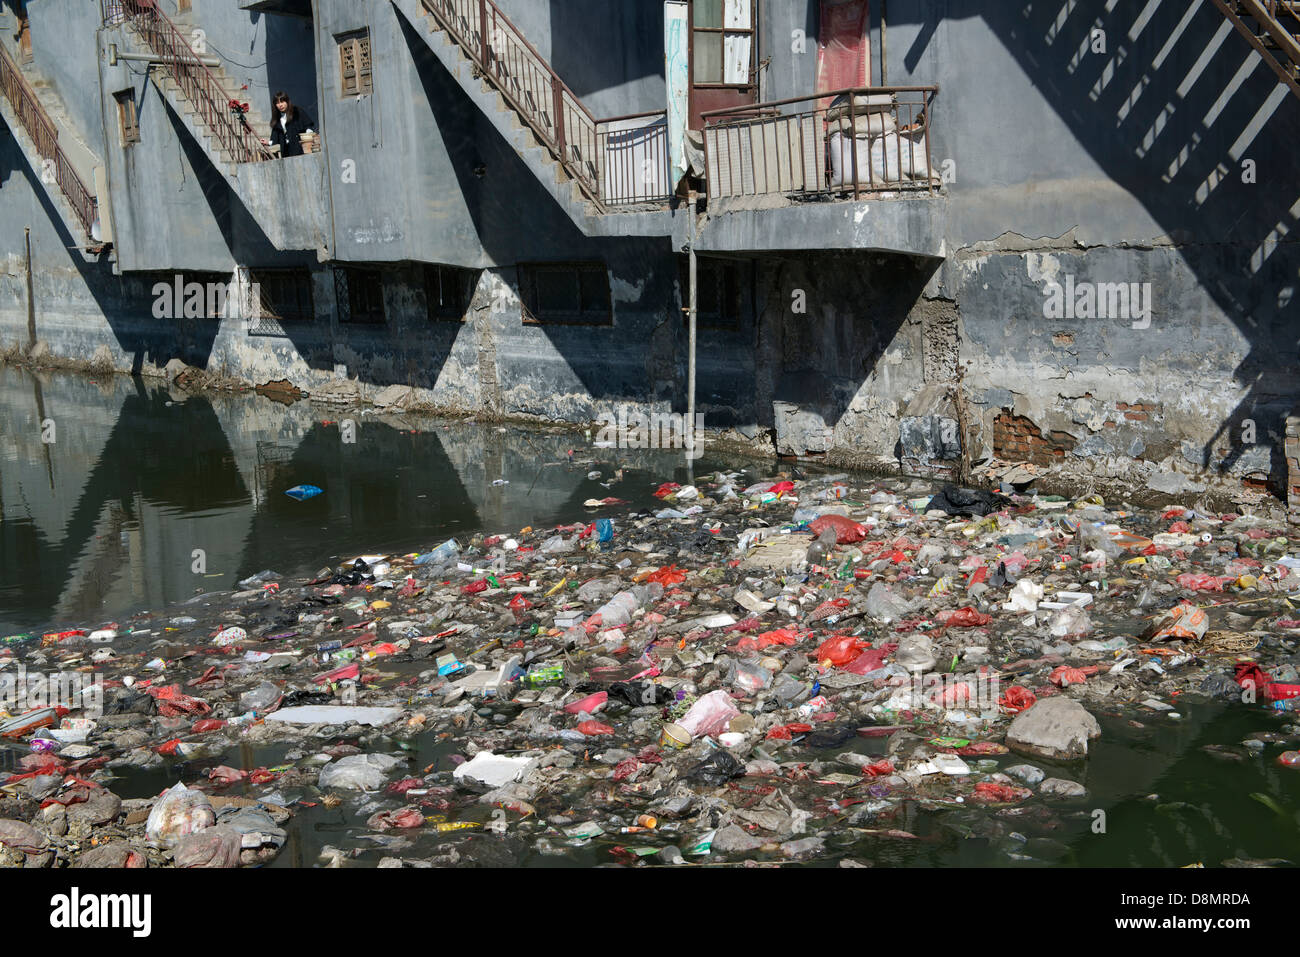 Liu Lu,  a native resident, stands at a balcony over a badly polluted river by garbage and industrial wastewater - Stock Image